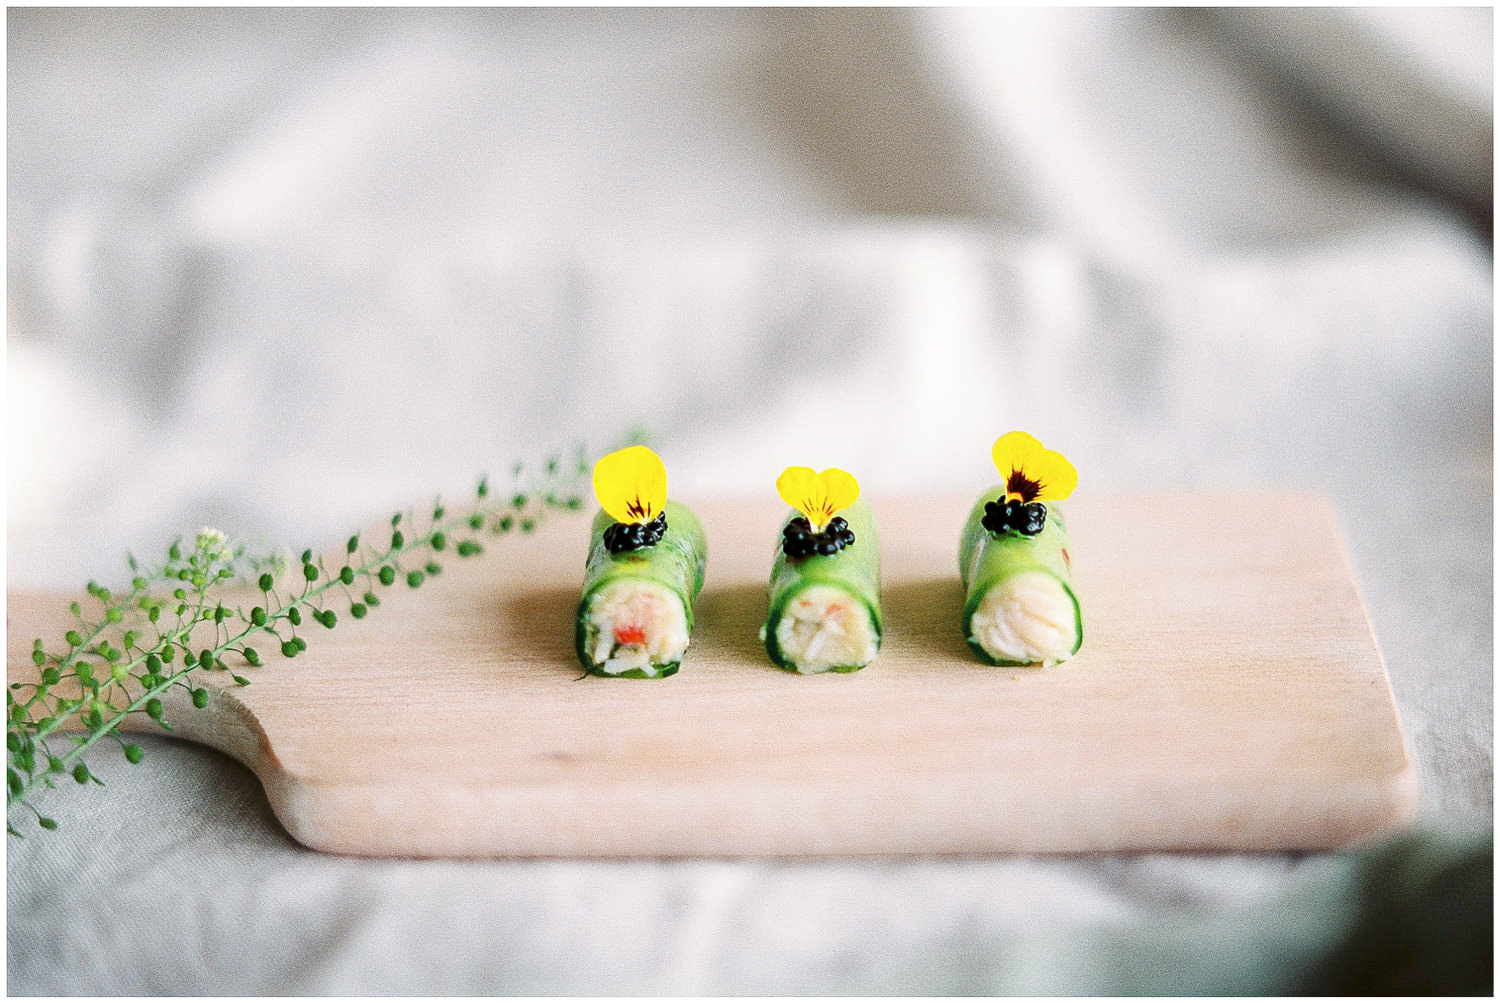 Canapés served on wooden block